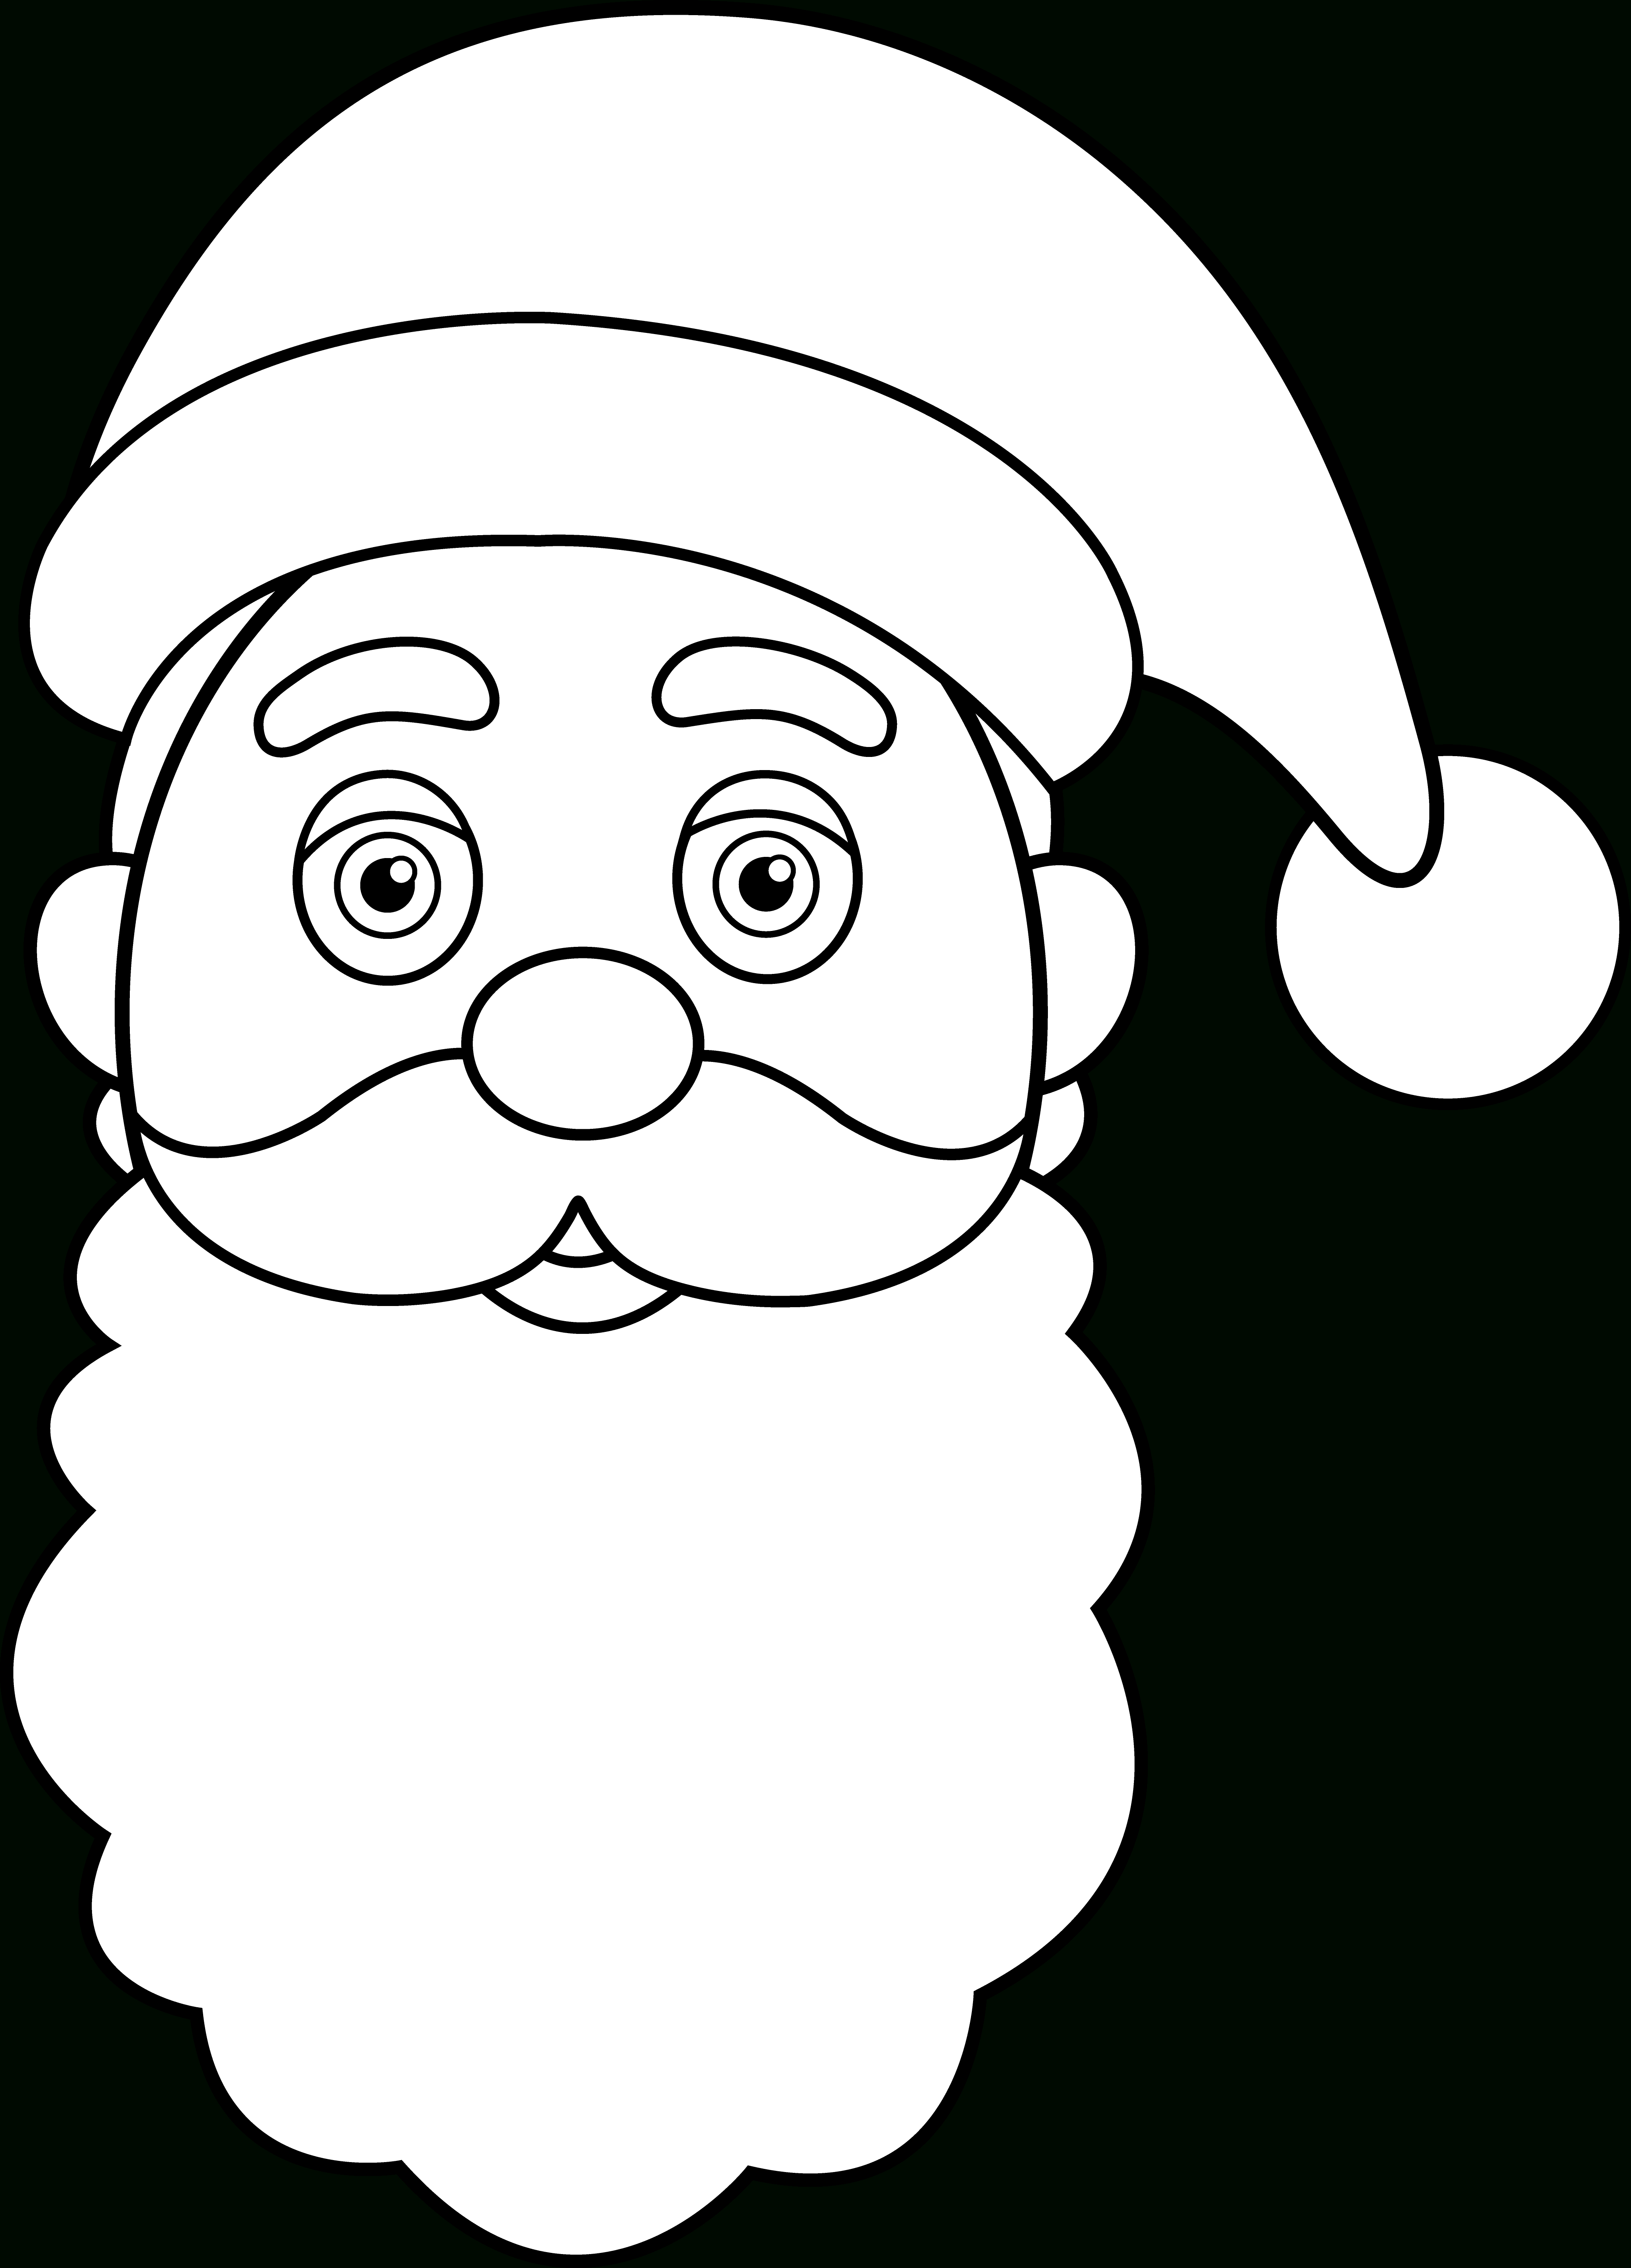 Free Santa Claus Face Pictures, Download Free Clip Art, Free Clip - Free Printable Santa Claus Face